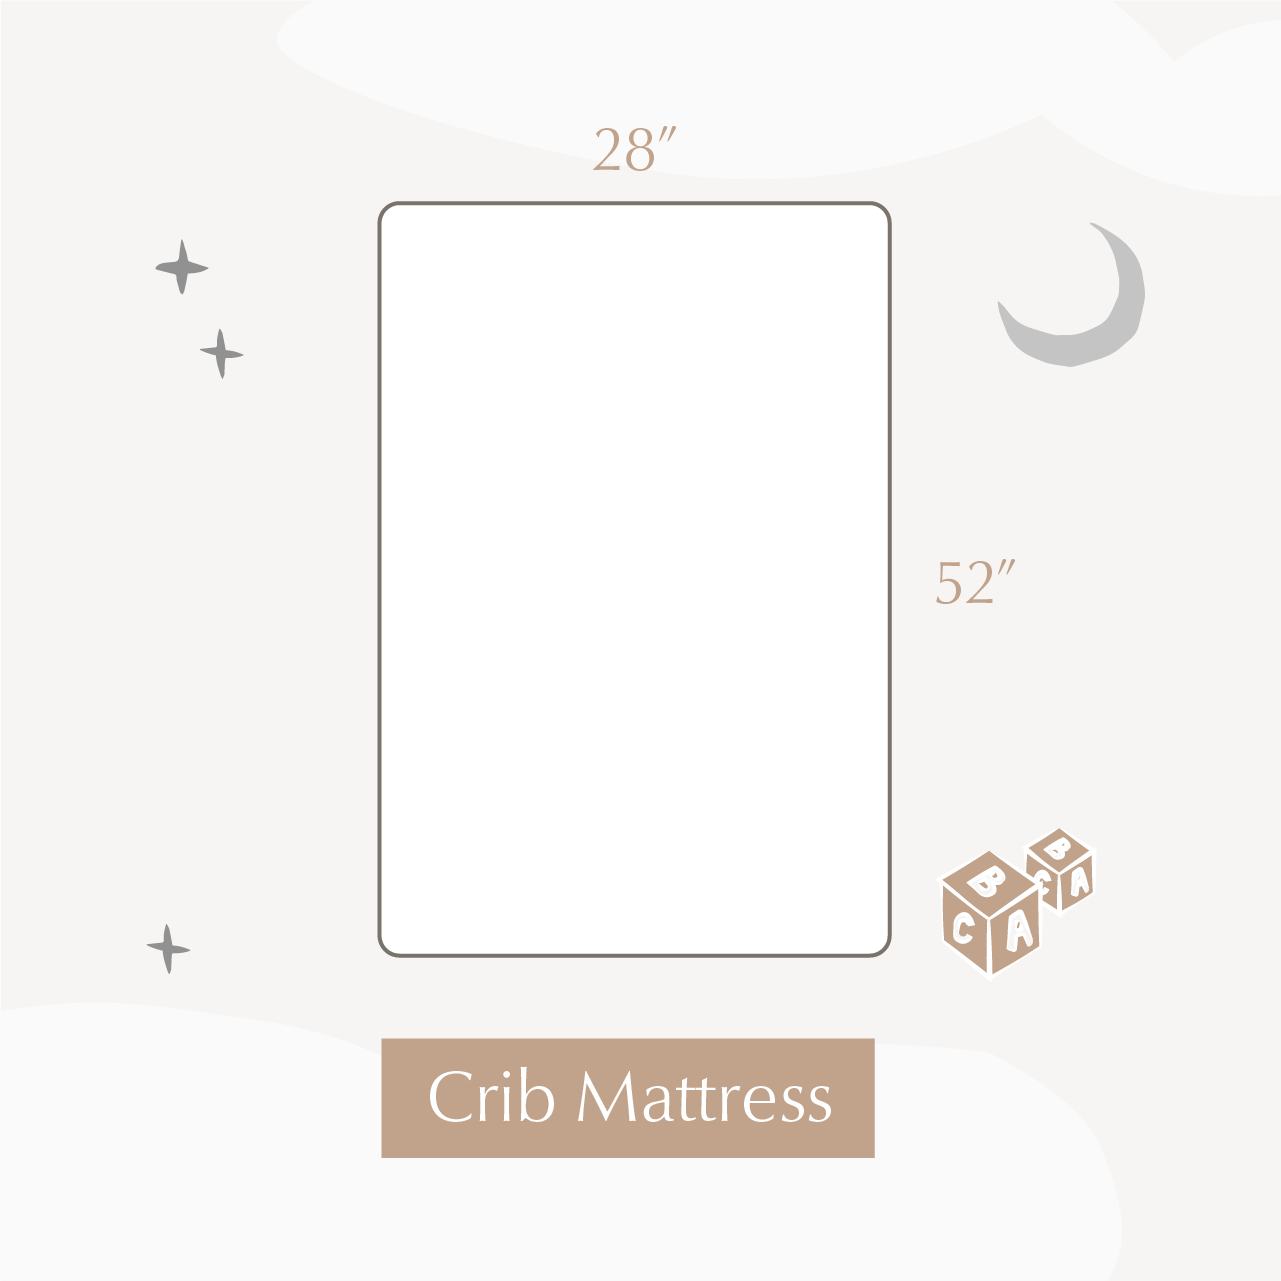 illustration of crib mattress showing the dimensions